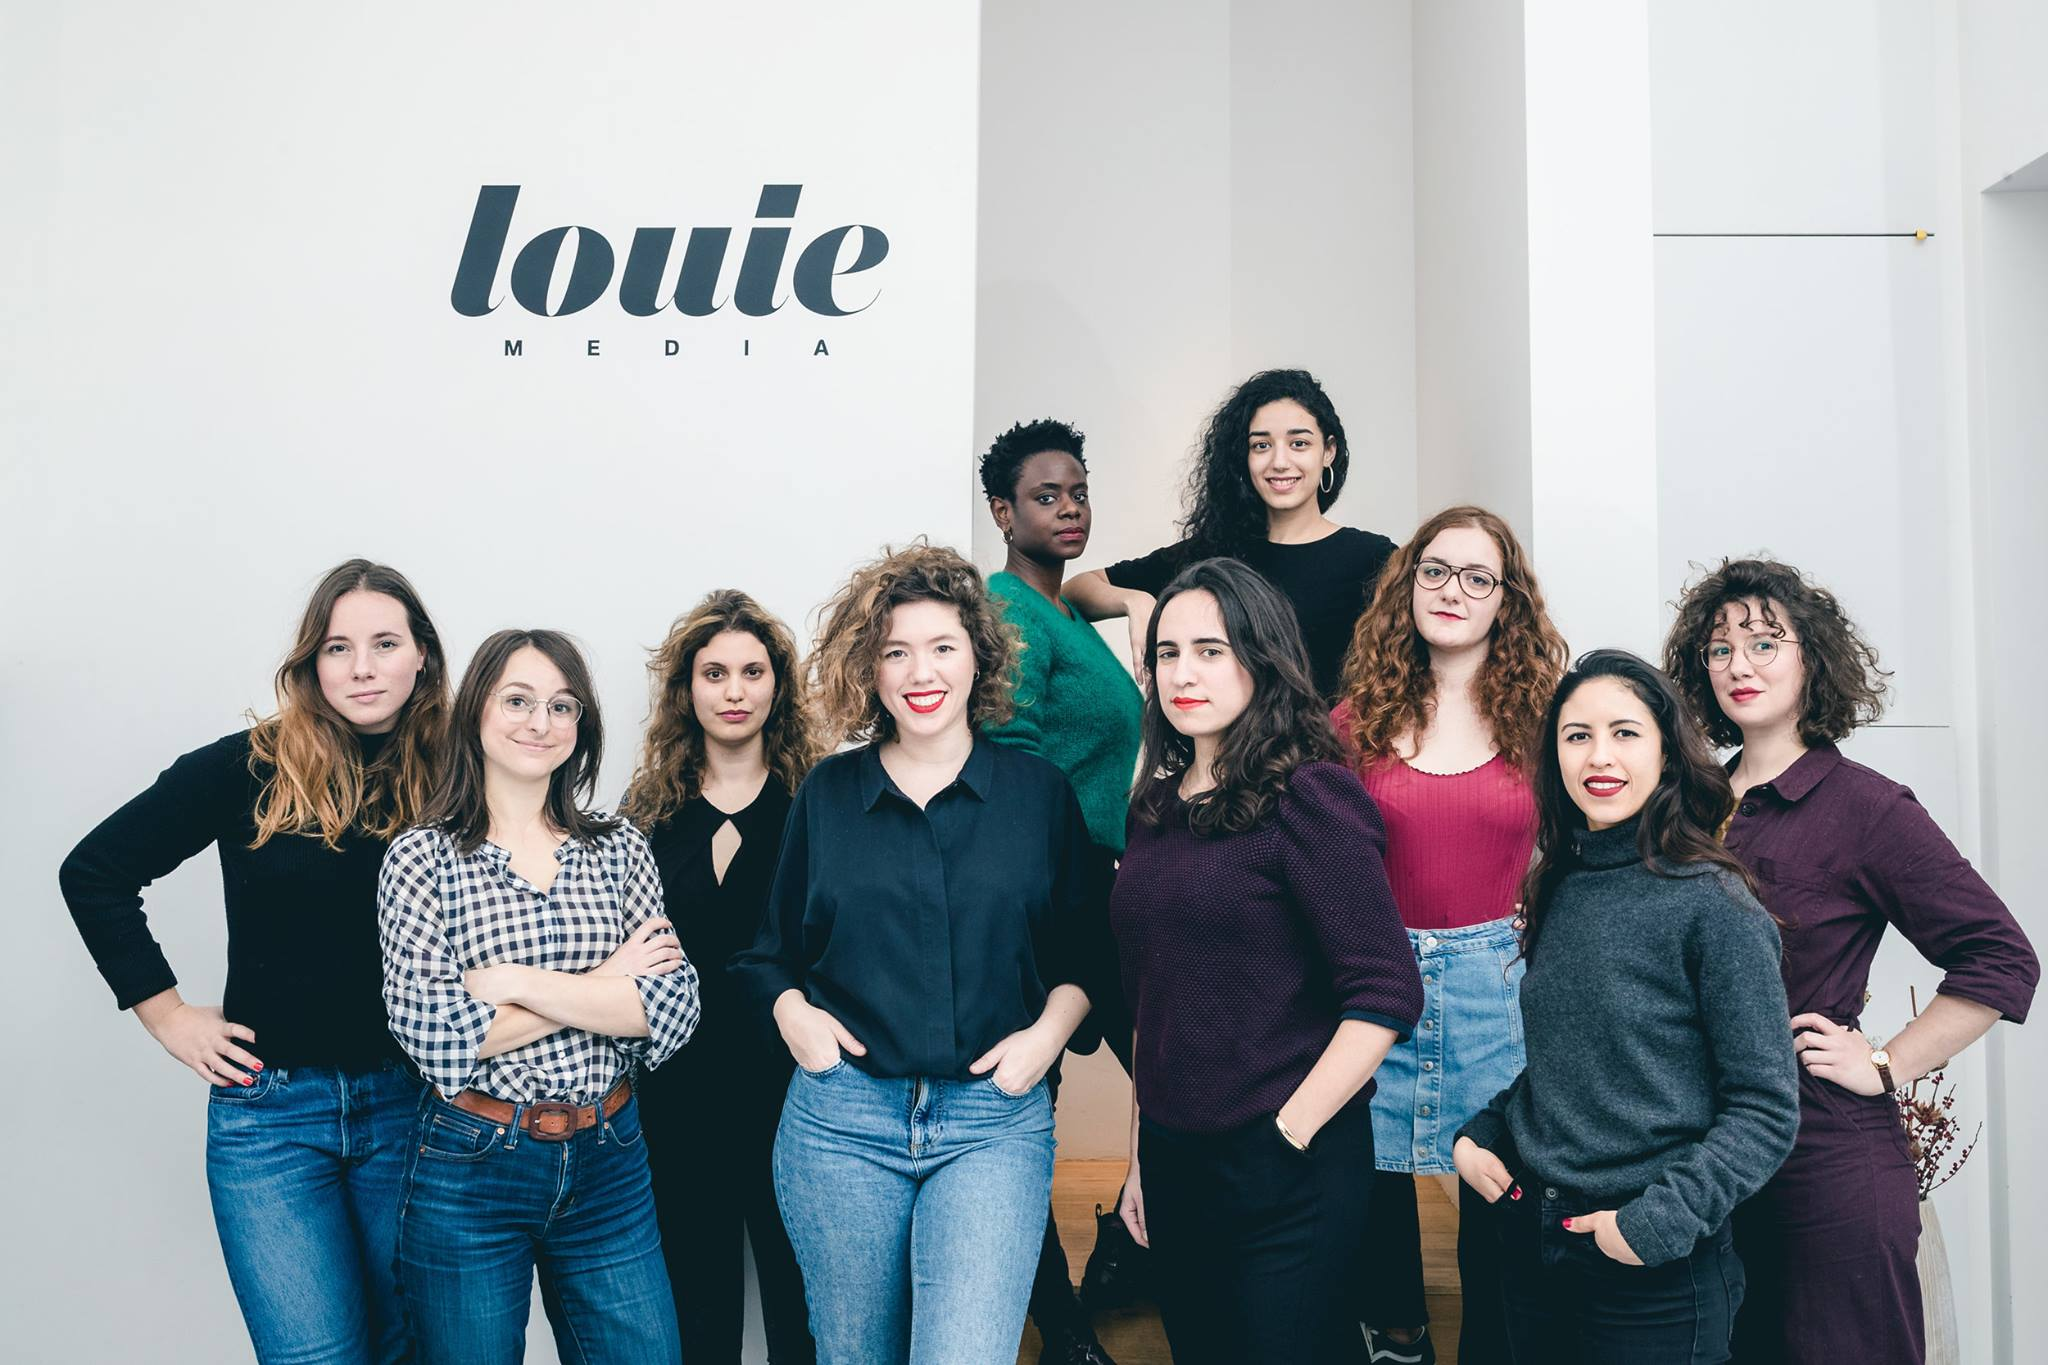 Louie Media renforce son équipe